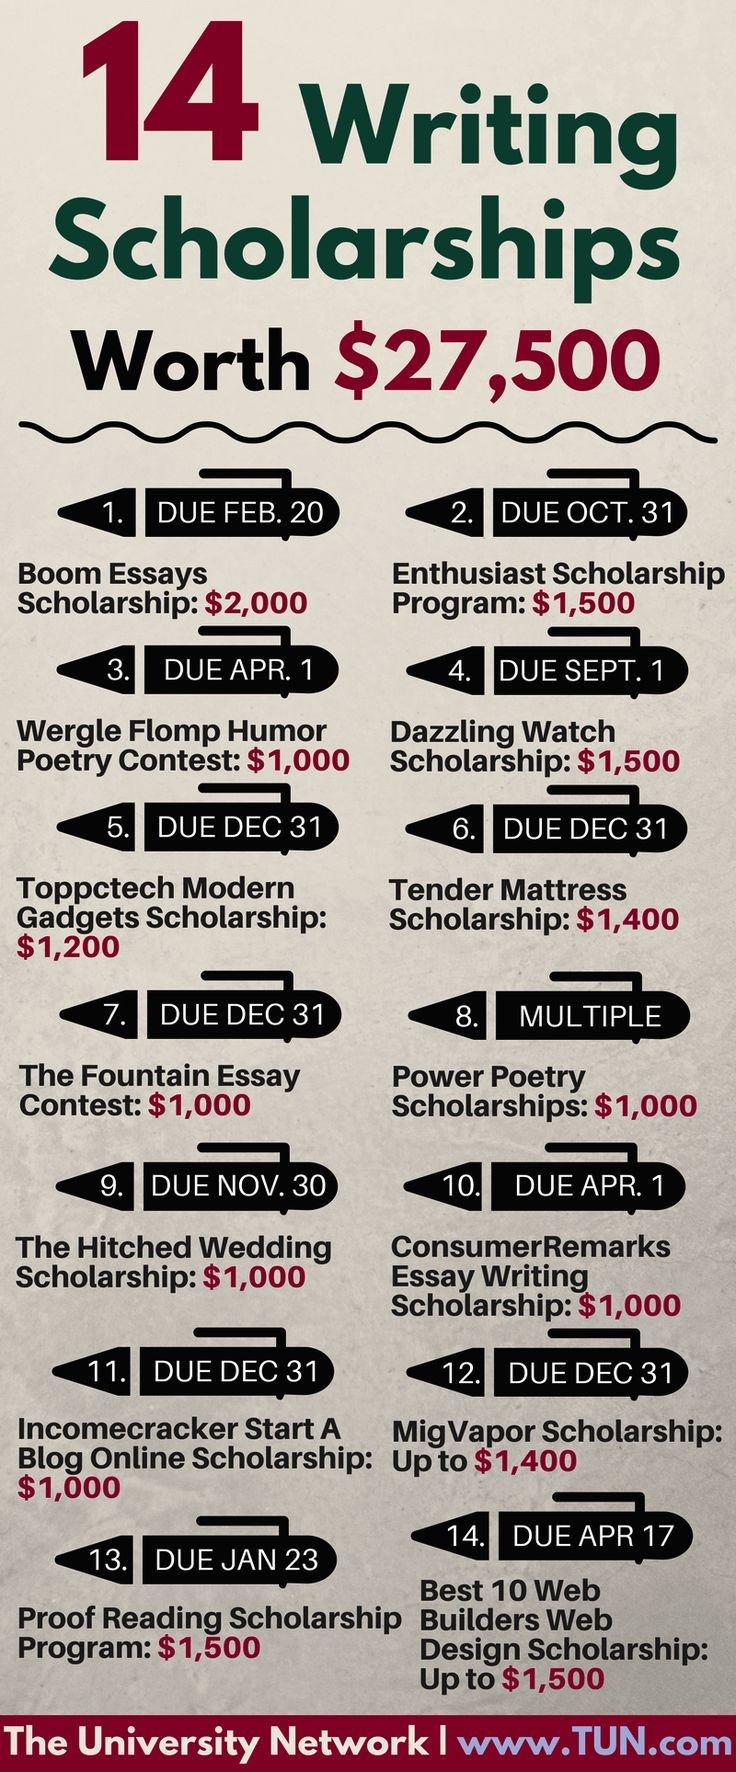 Yellow Wallpaper Essay Five Year Career Plan Essays For Scholarships My Five Year Plan After  Graduation Five Years After And Exams Scholarships Athletic The Importance Of English Essay also Example English Essay Welcome Writers These Scholarships Require You To Write Essays  Essay With Thesis Statement Example